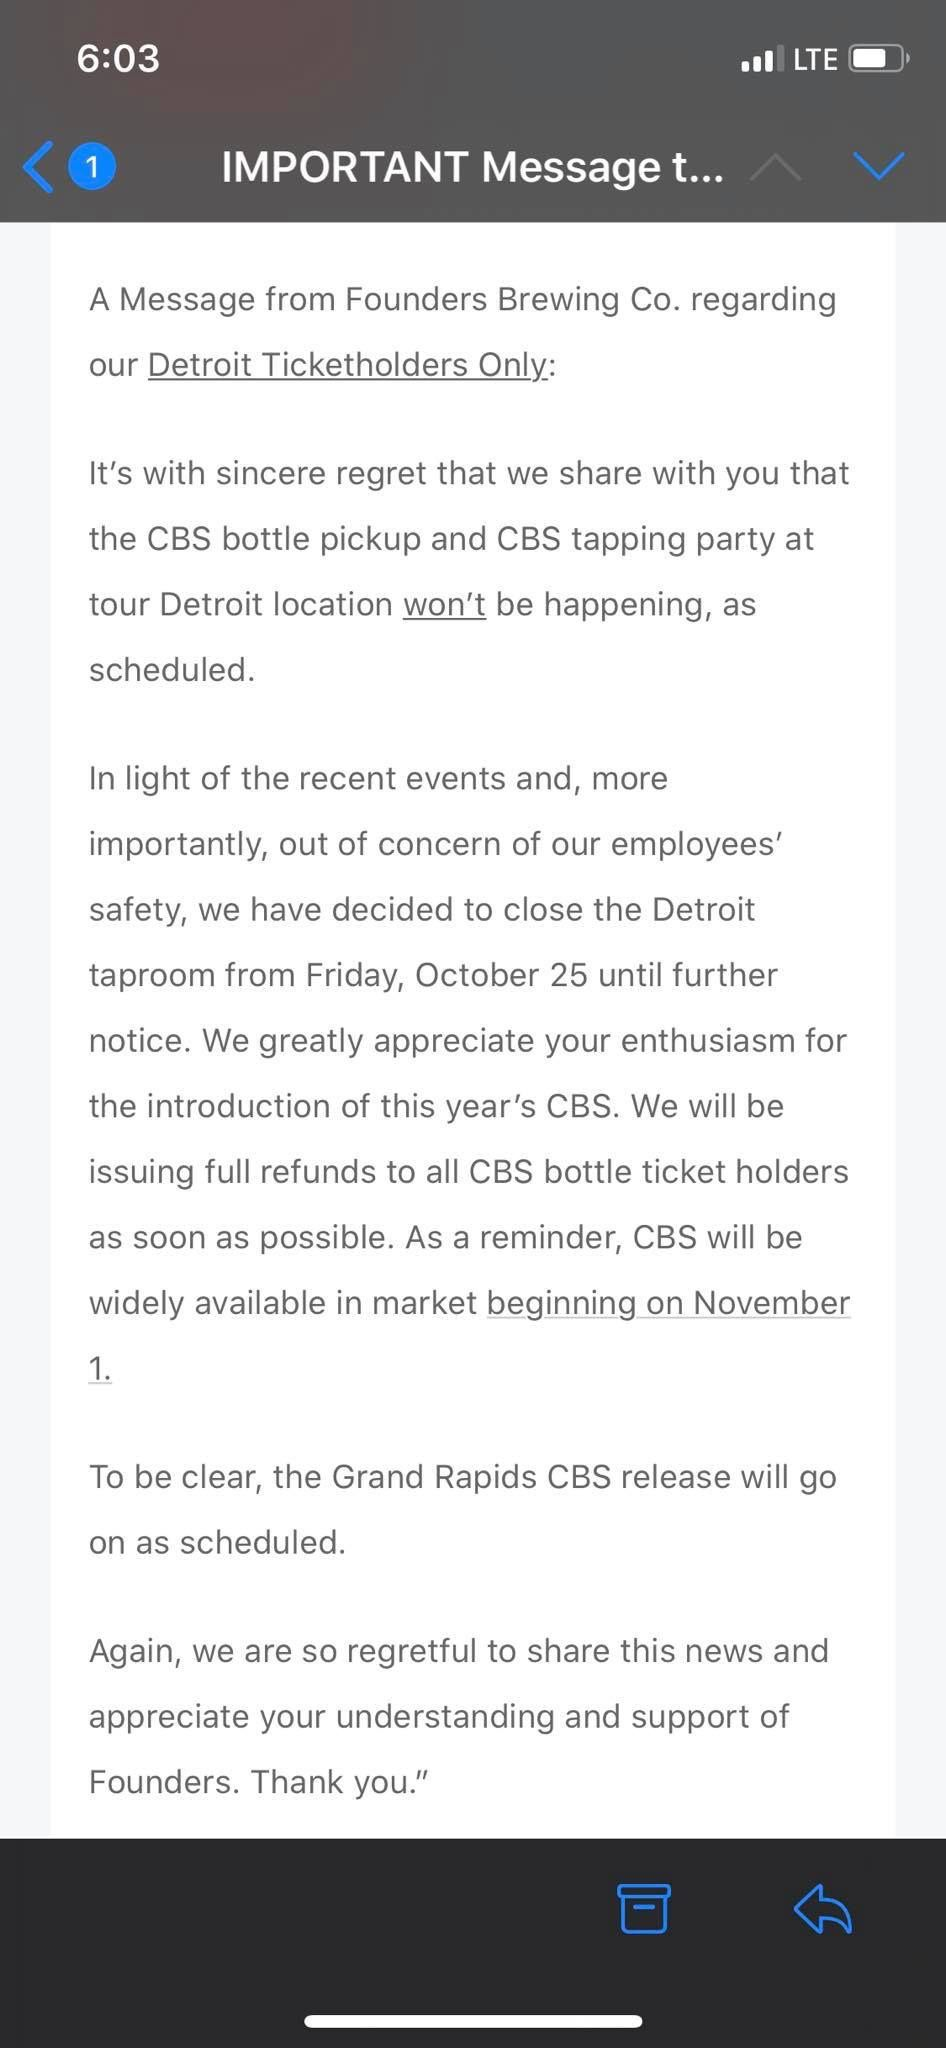 The email is displayed as a screenshot. It states that the Detroit event has been canceled and that ticket holders will receive refunds. The Detroit location is closed until further notice due to threats.